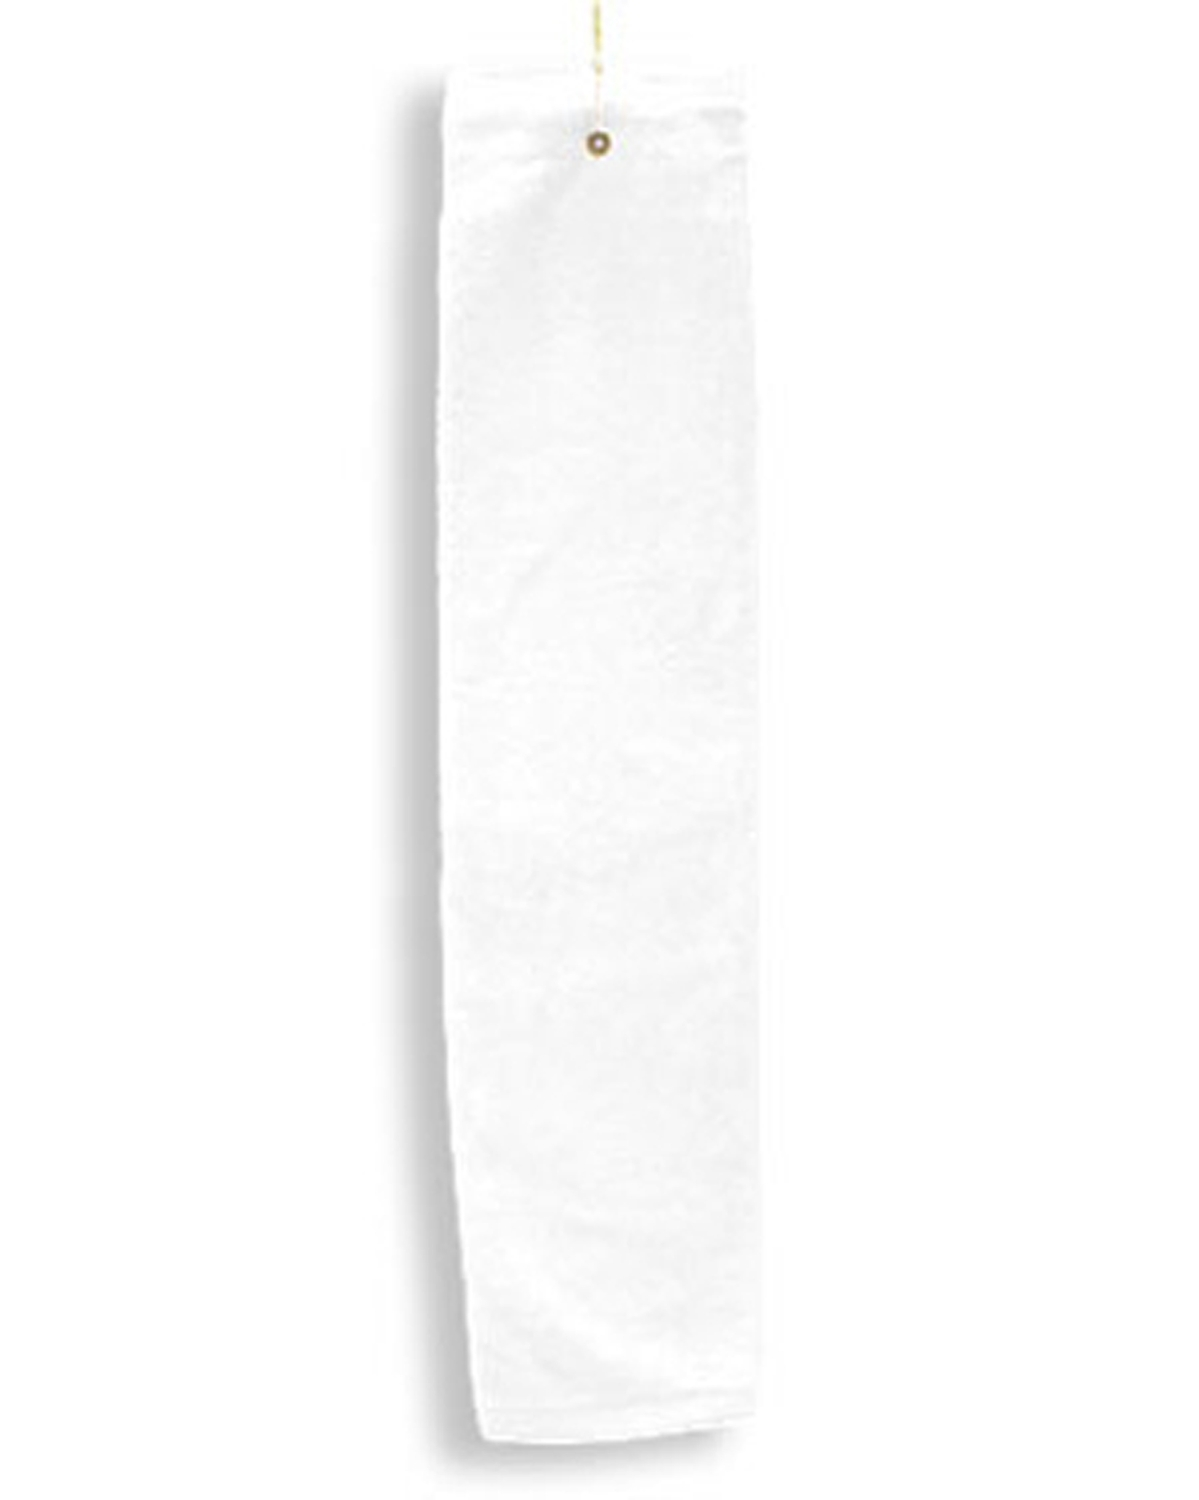 Anvil T68TH - Hemmed Towel W/ Greommet